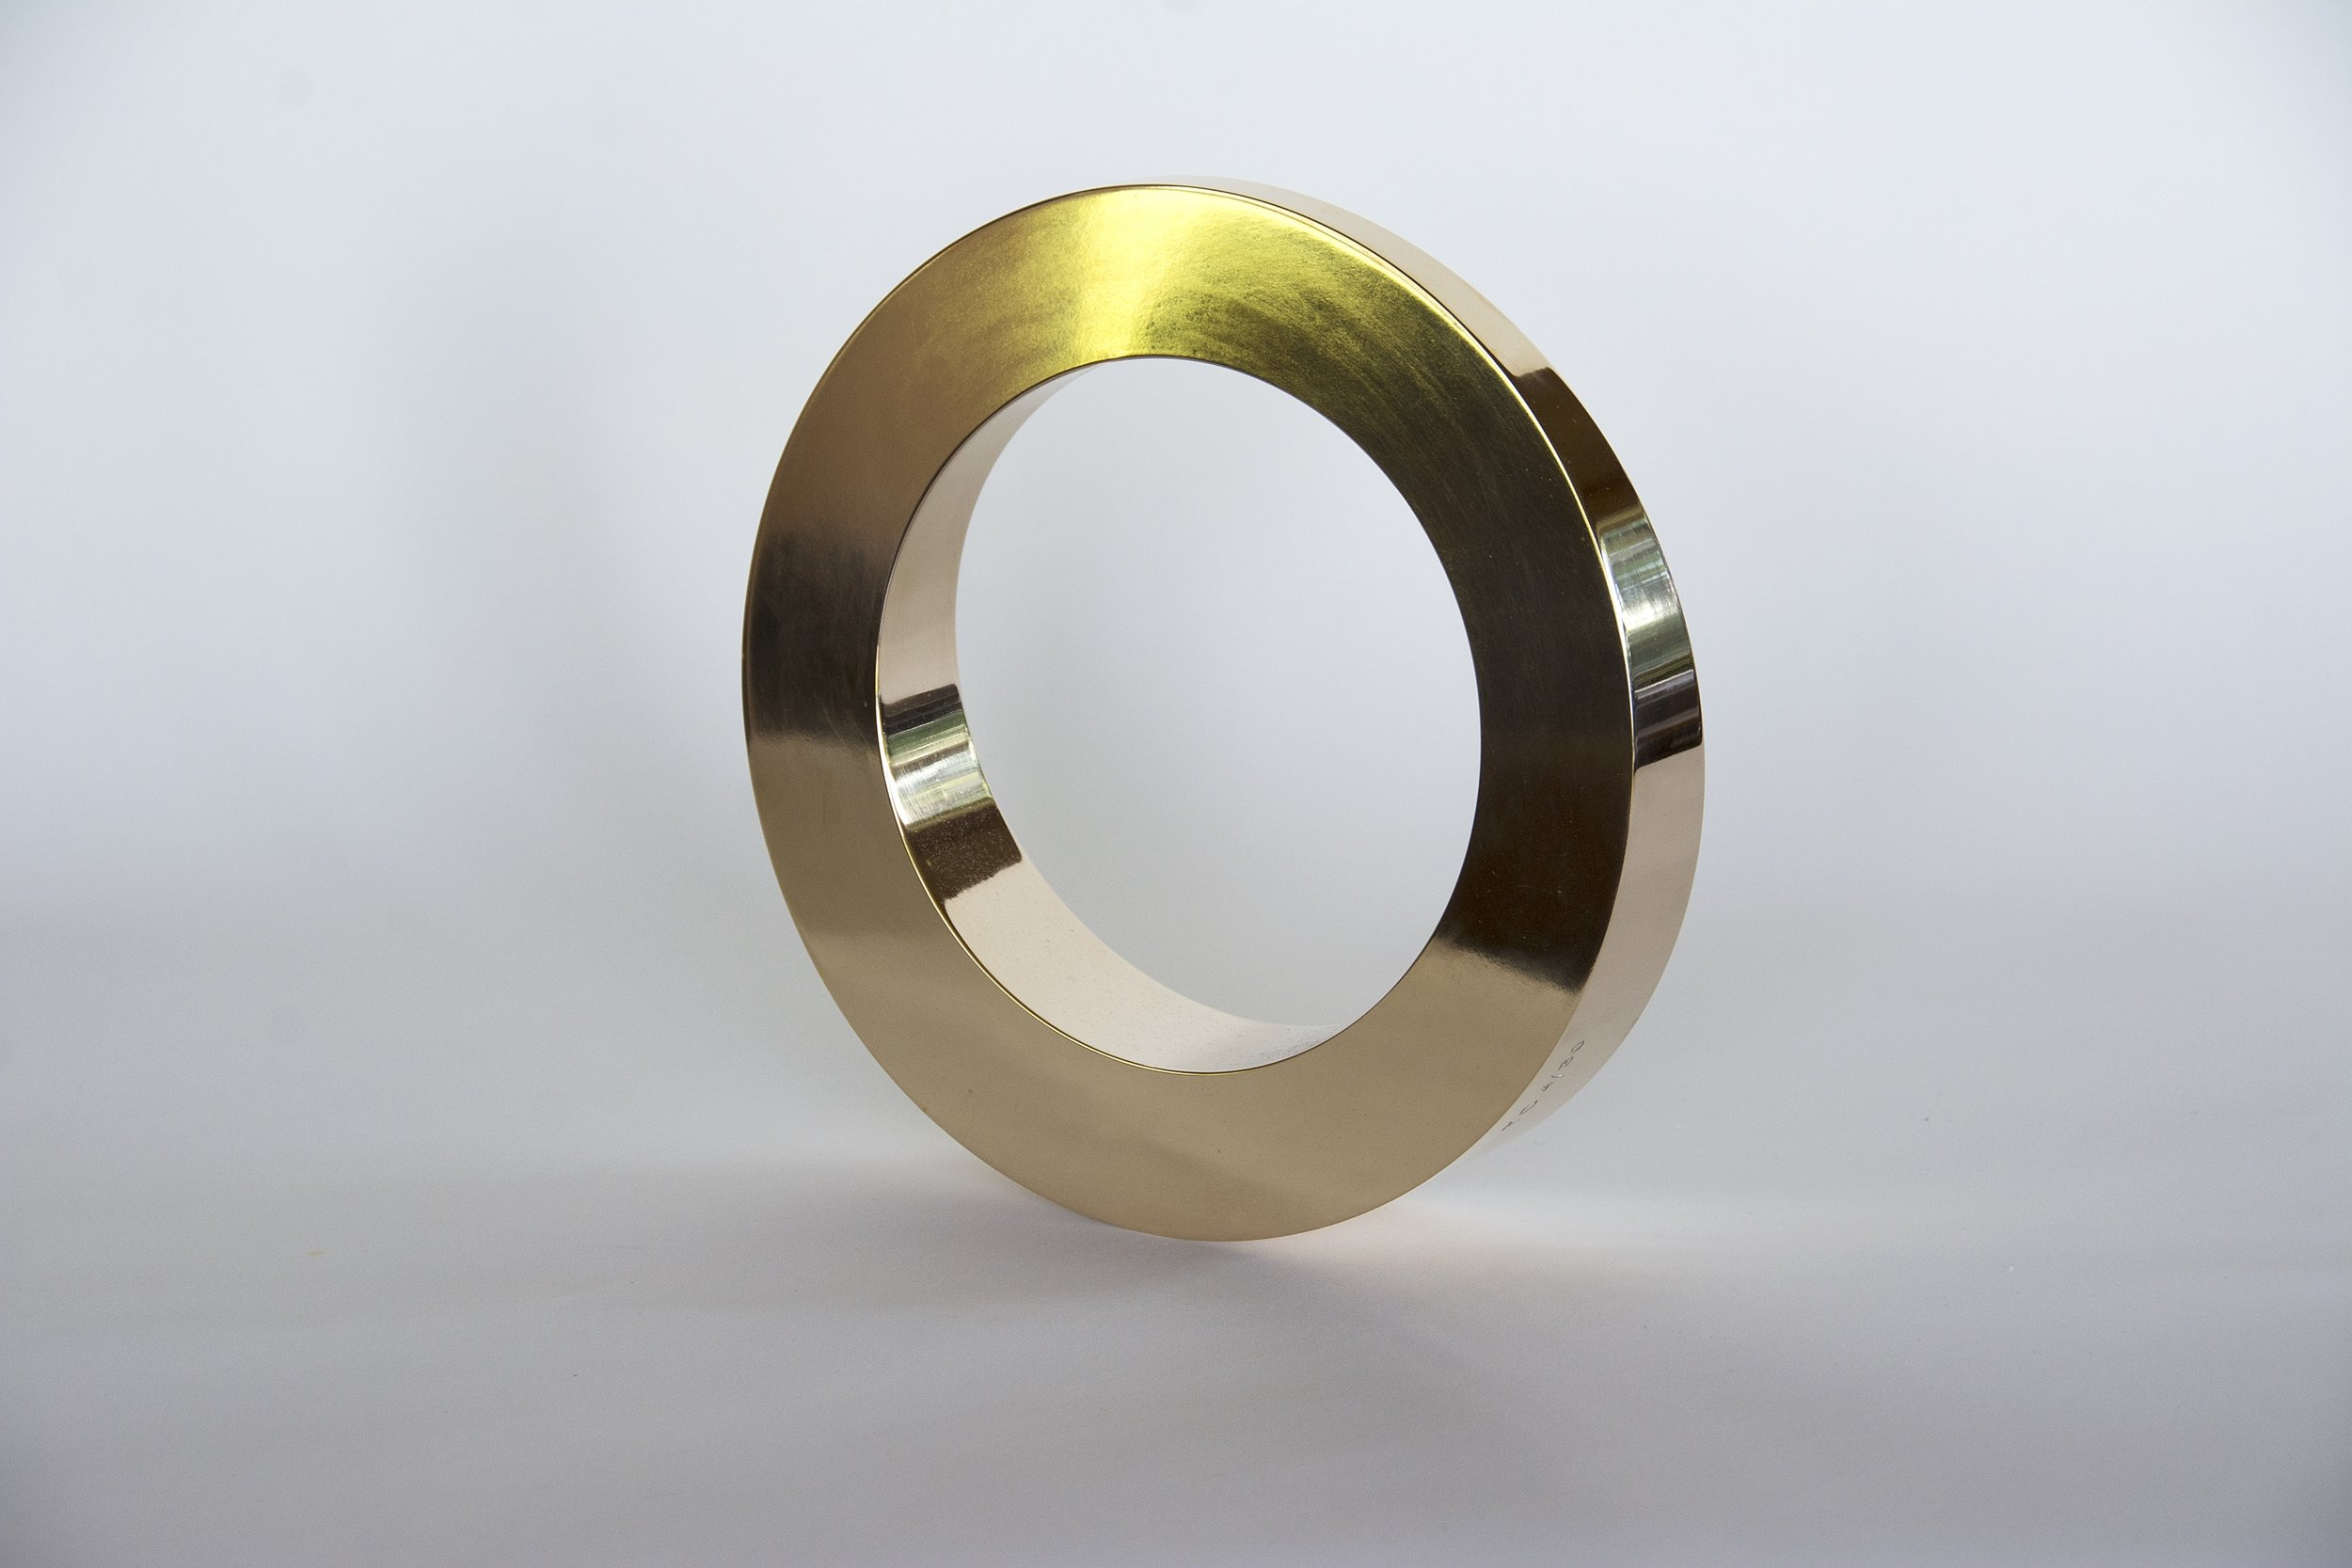 Bronze kinetic circular sculpture Tarik Currimbhoy